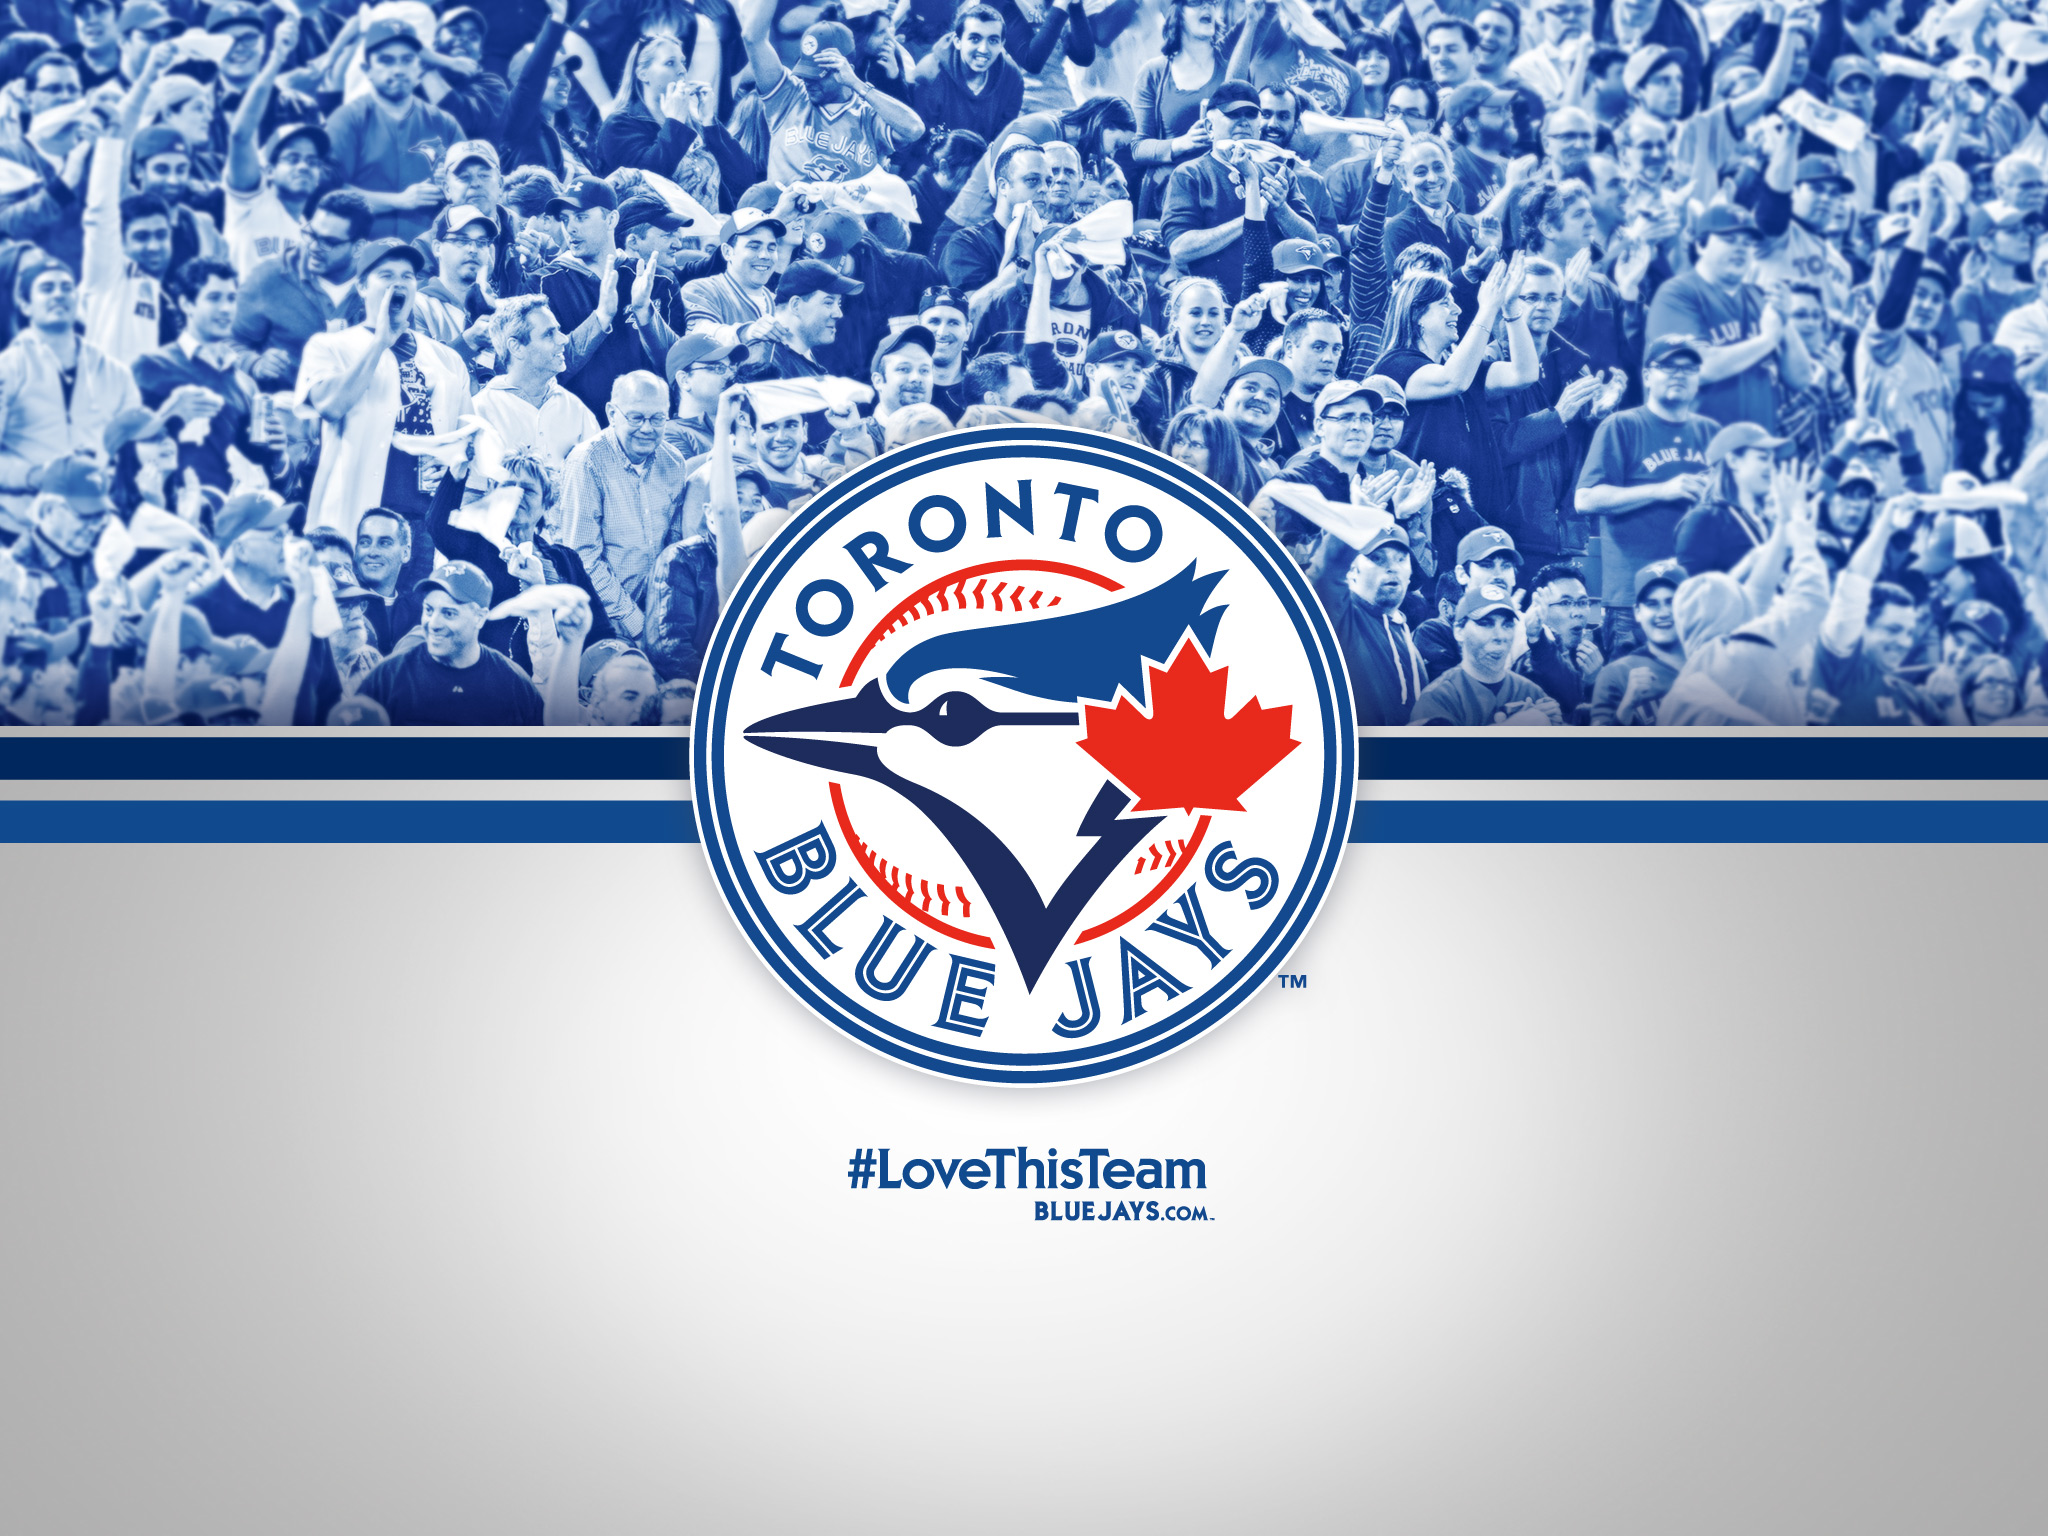 TORONTO BLUE JAYS mlb baseball 16 wallpaper background 2048x1536